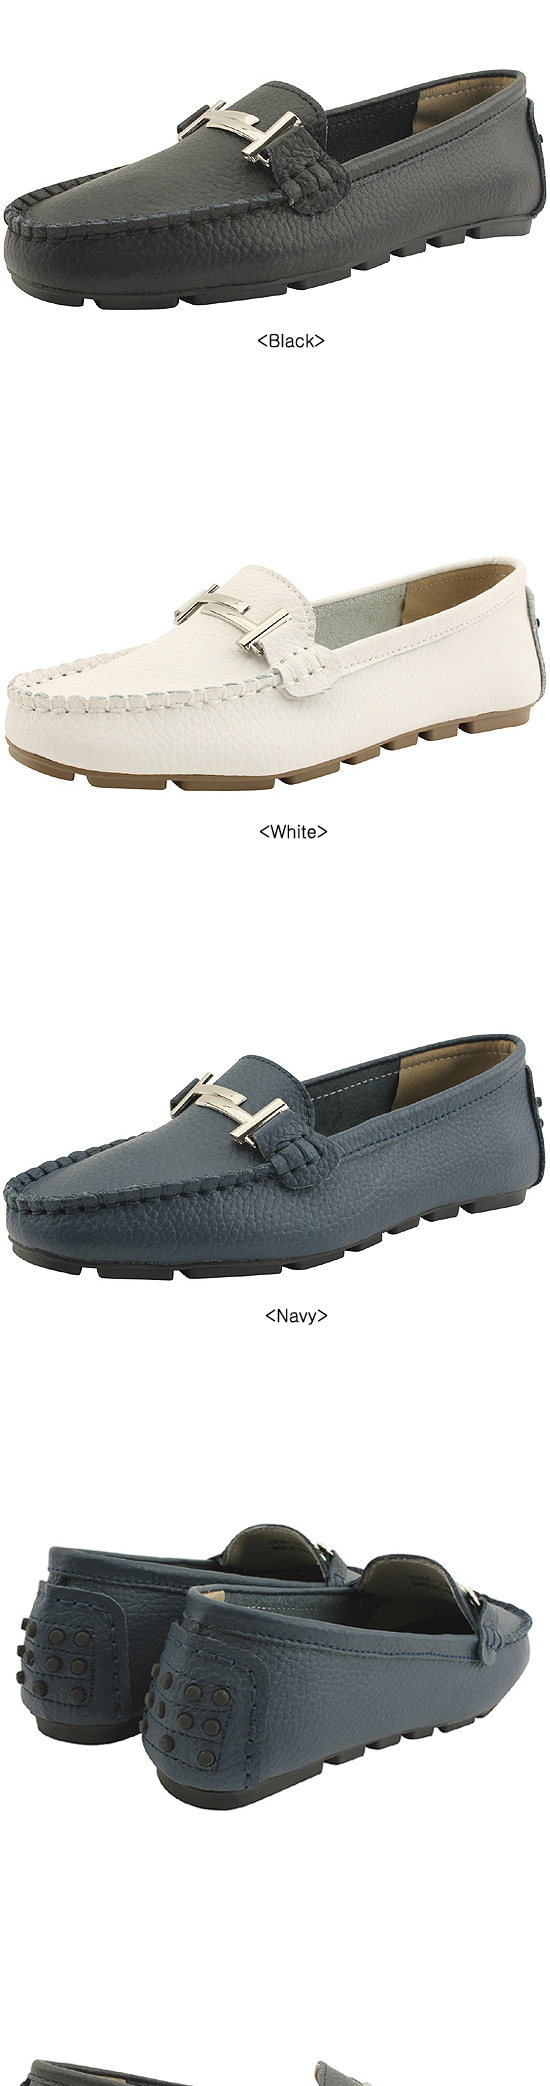 Cowhide Chain Strap Women's Loafers Navy